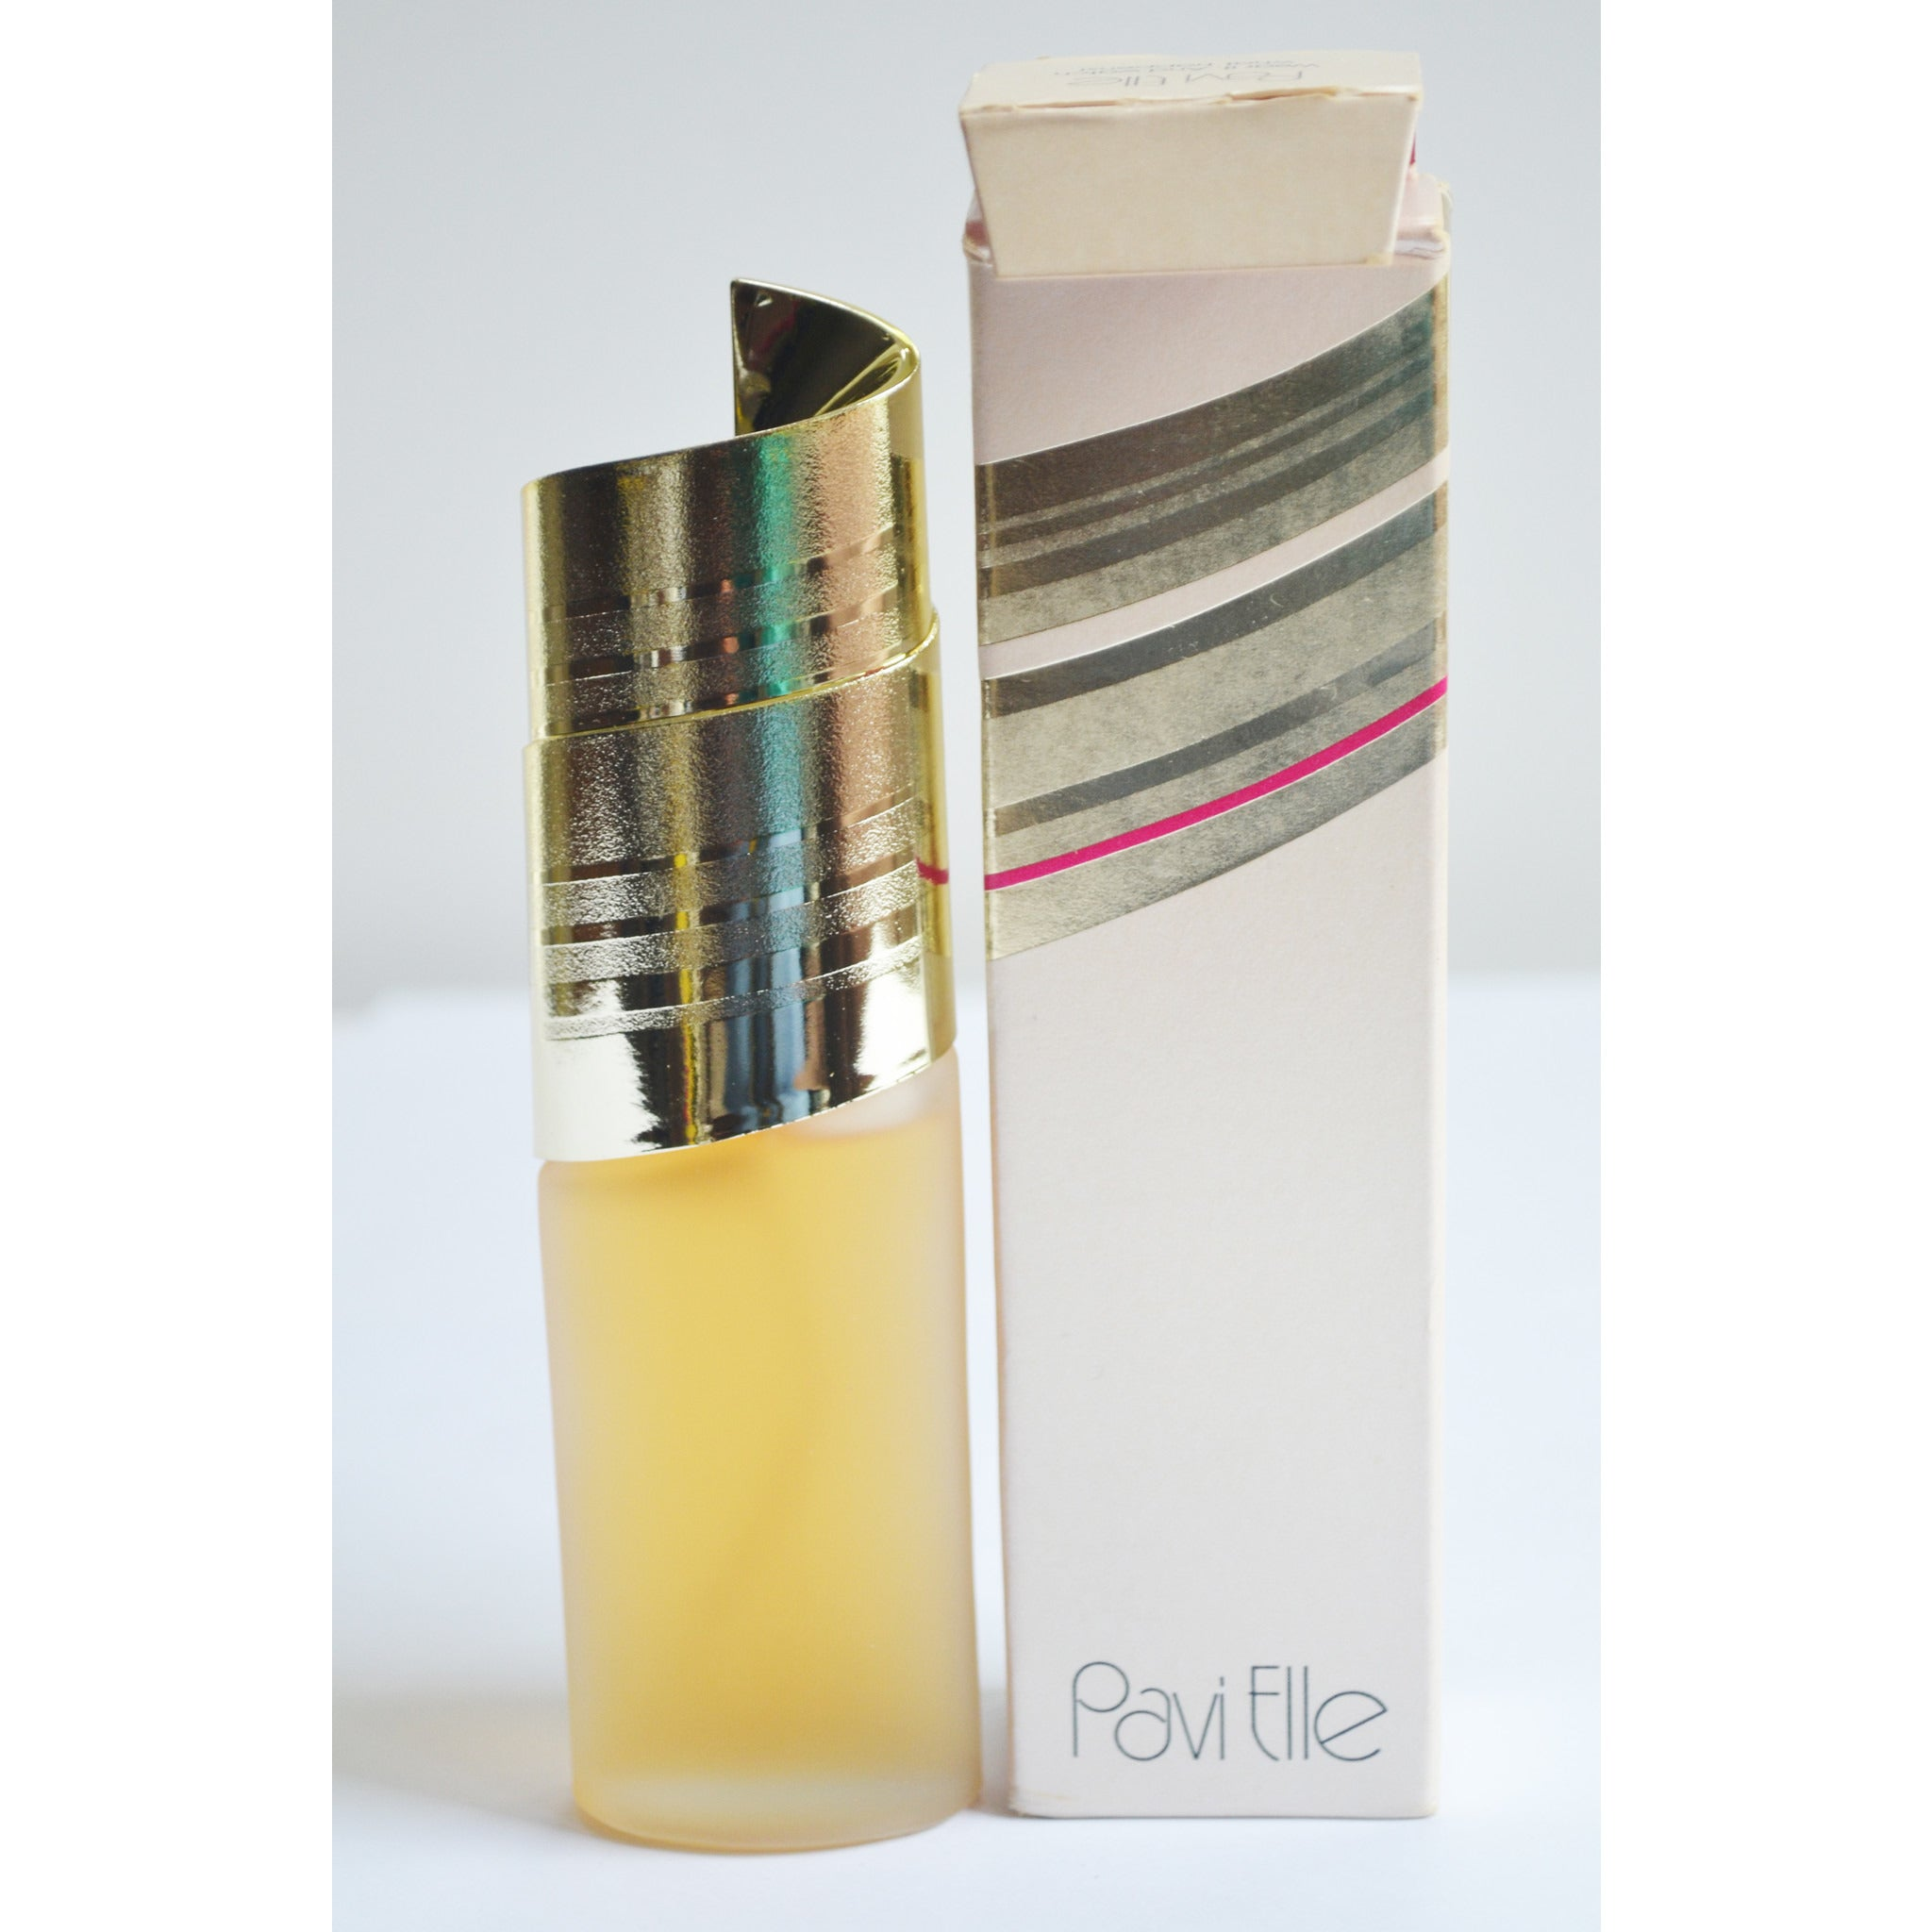 Vintage Pavi Elle Ultra Cologne By Avon